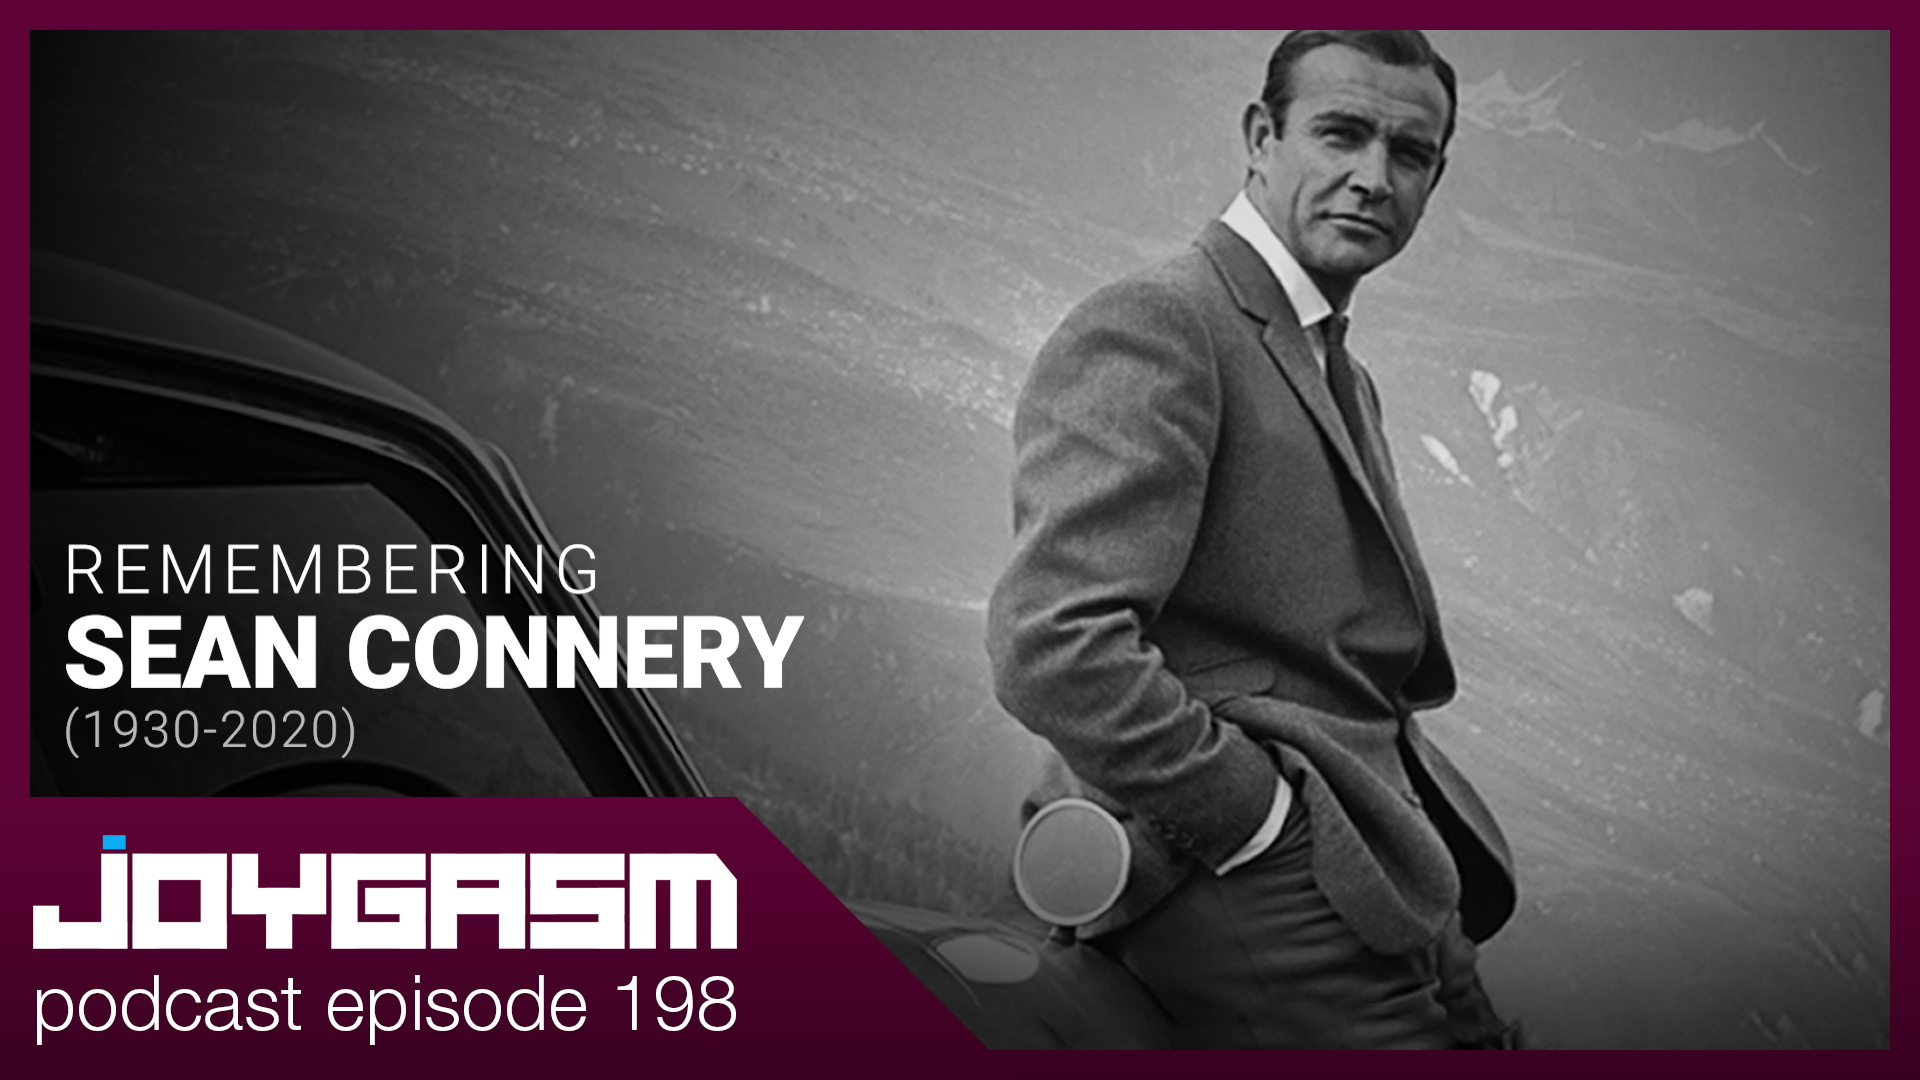 Ep. 198: Remembering Sean Connery